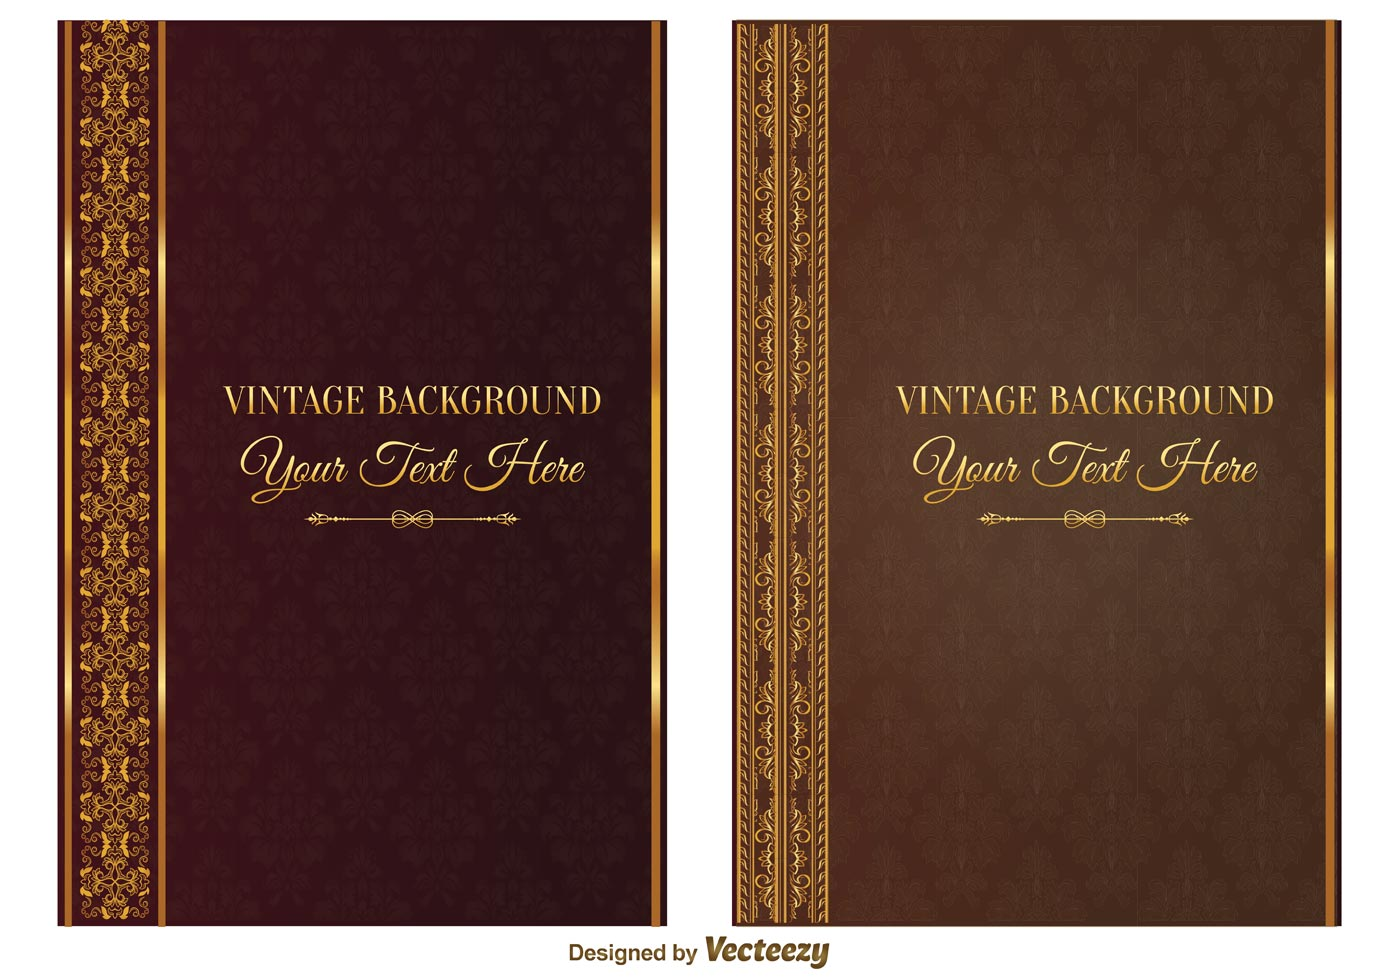 Book Cover Art Search : Vintage book covers download free vector art stock